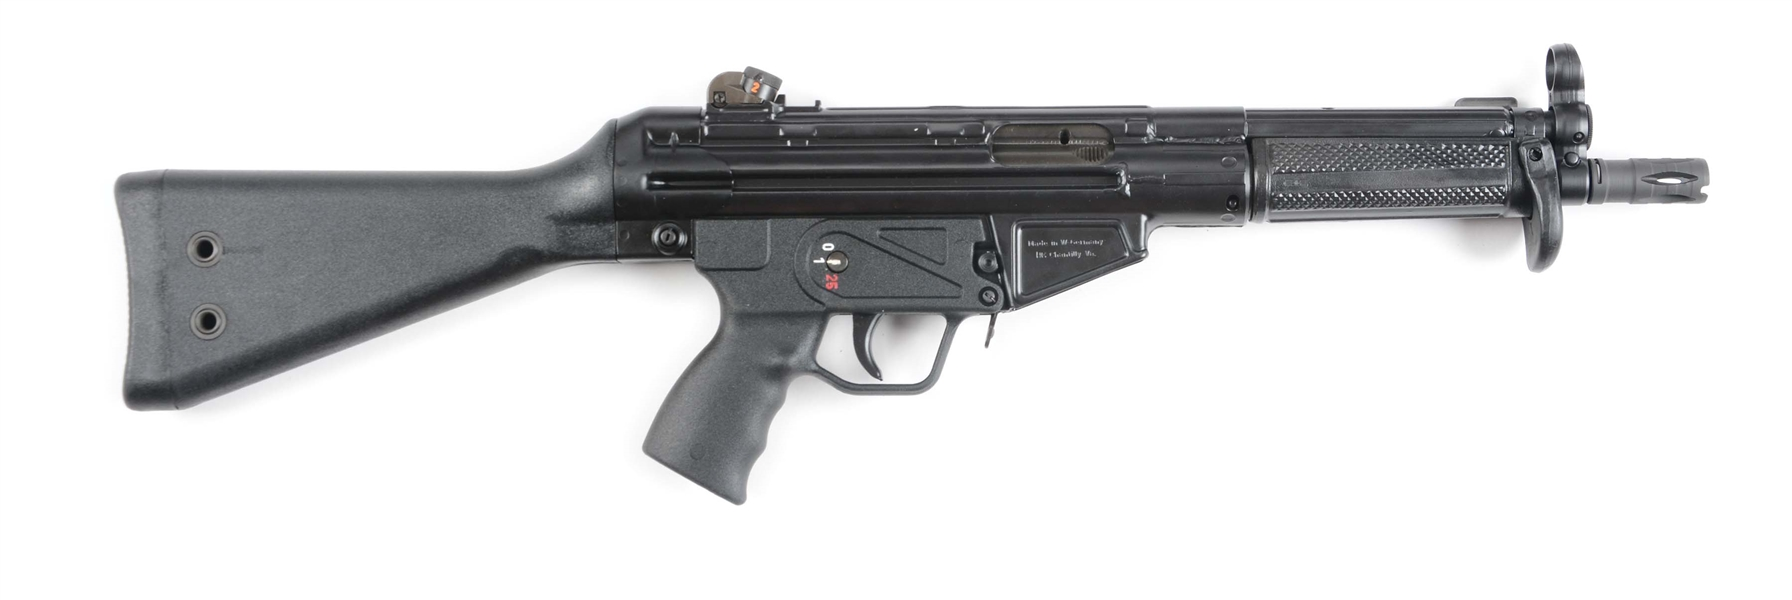 (N) INVESTMENT LEVEL MINT UNFIRED HECKLER & KOCH MODEL 53 MACHINE GUN (PRE-86 DEALER SAMPLE)